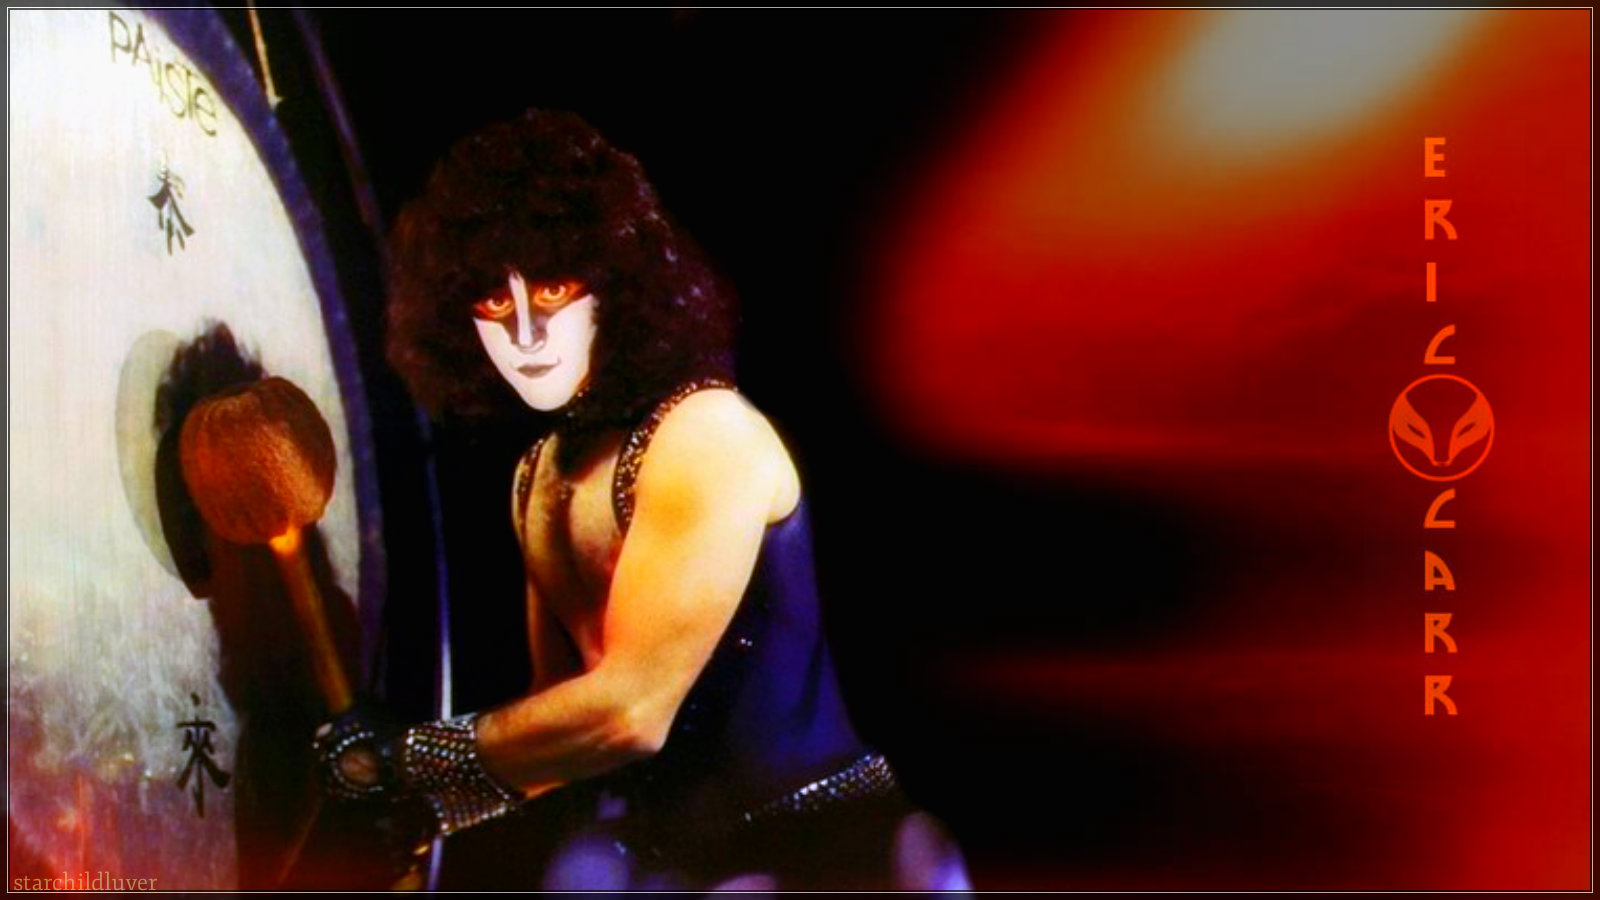 how tall is eric carr